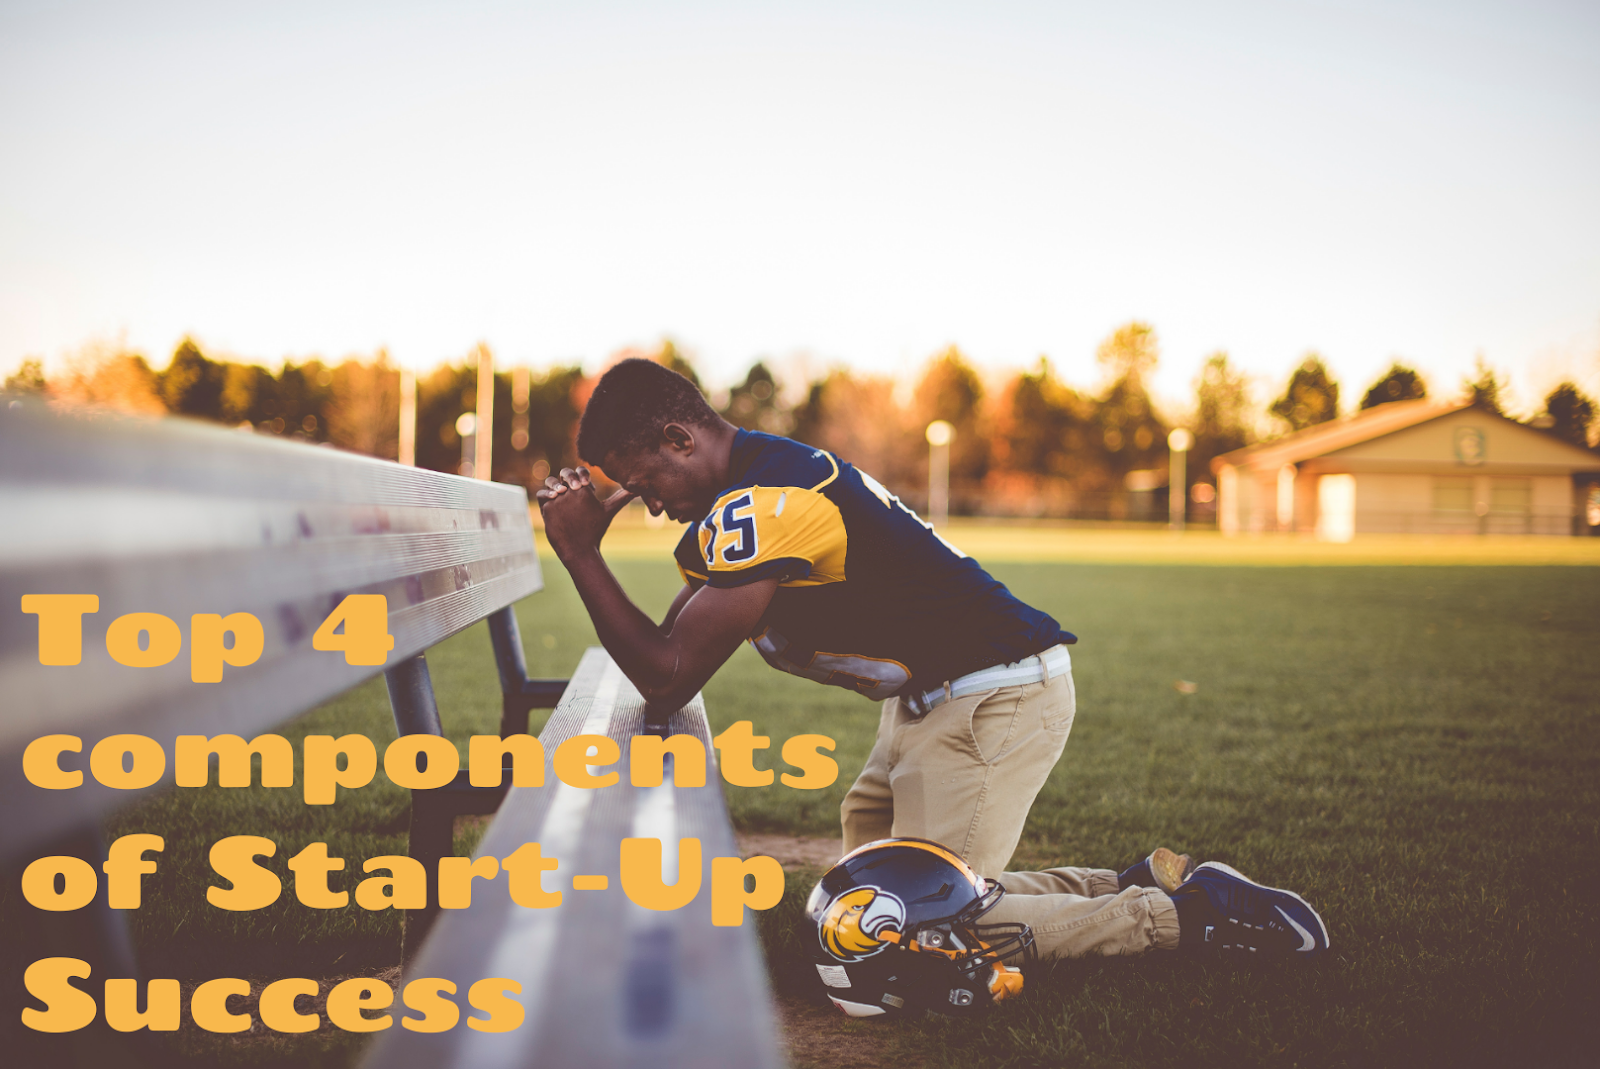 Top 4 Components of Start-up Success